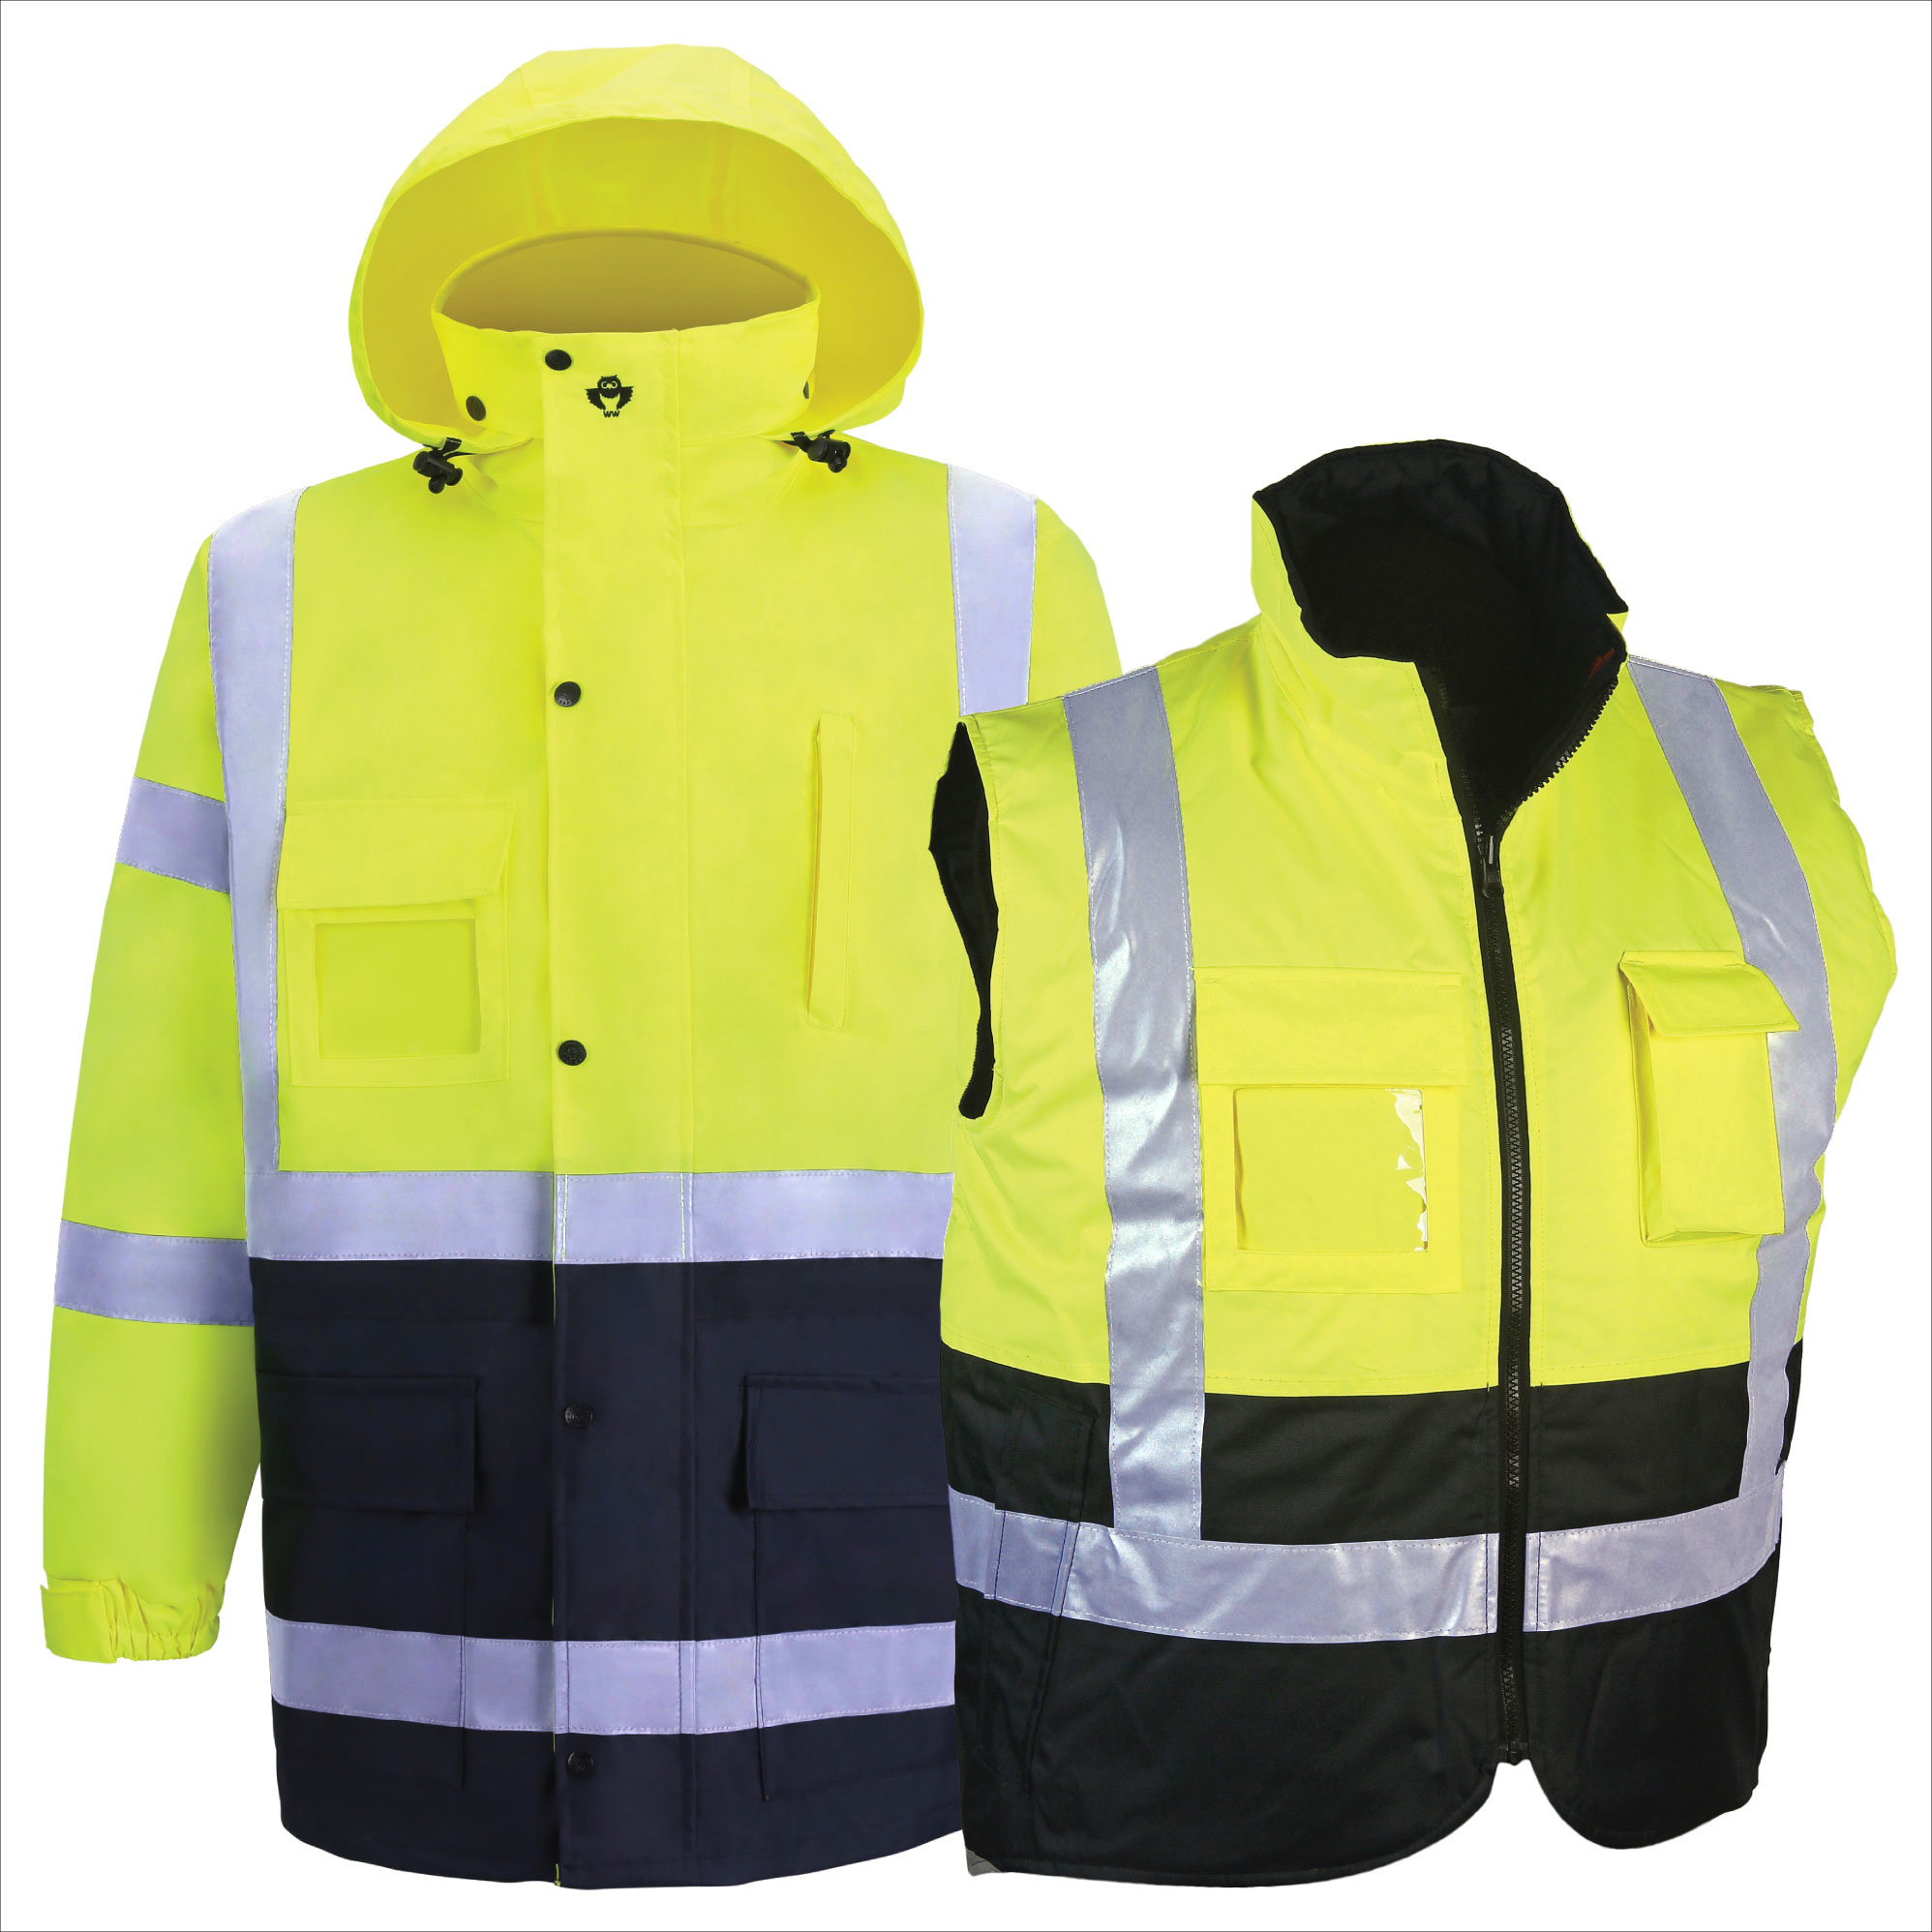 HIGH VIZ RAIN PARKA AND BODY WARMER-2W International